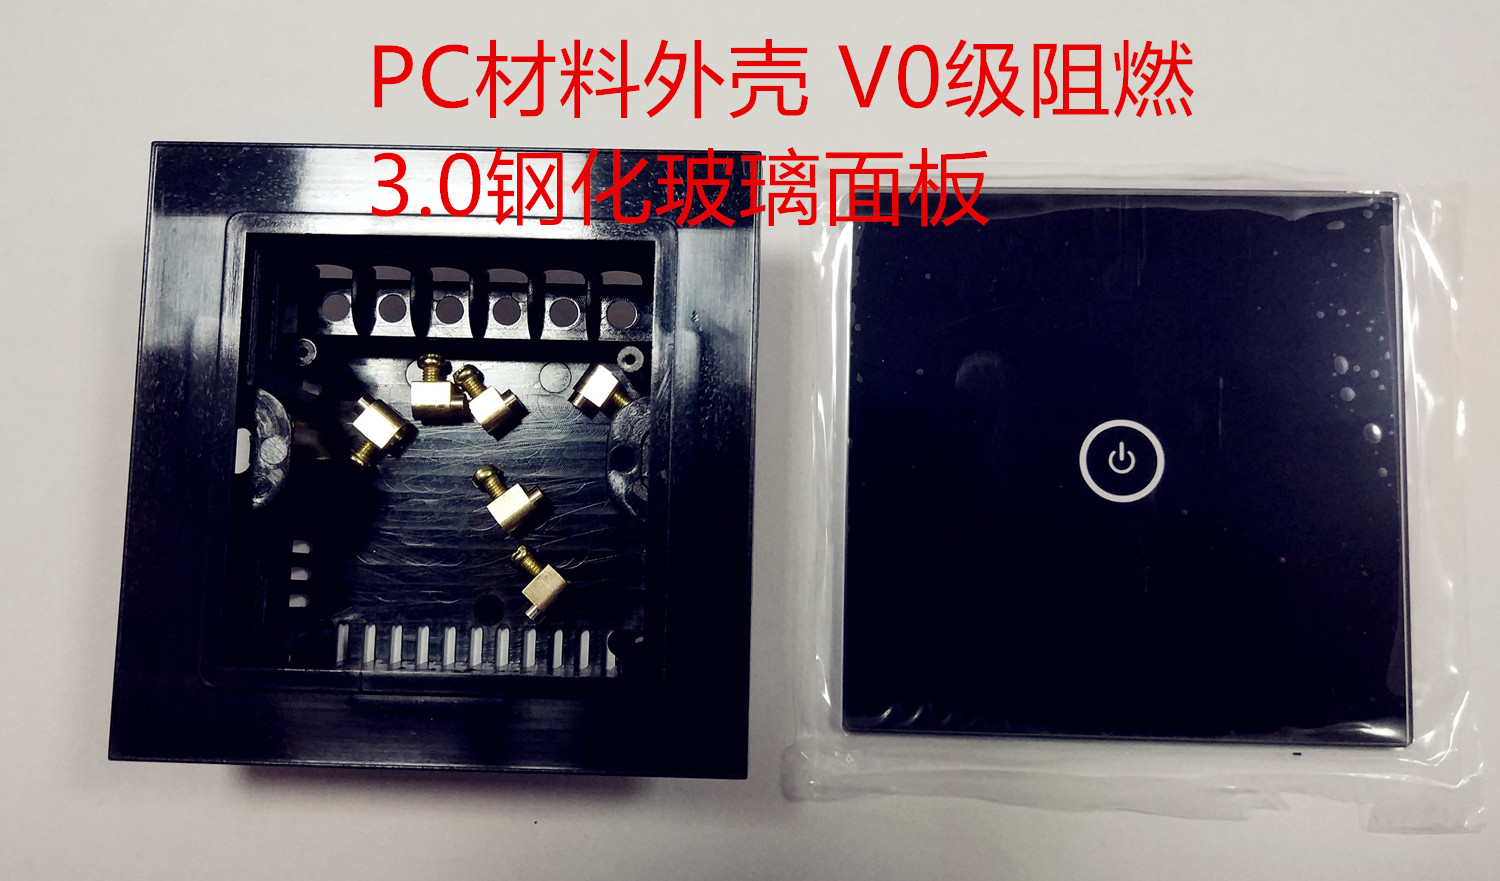 GB 86 type smart home touch switch shell kit, 6 hole wiring hole with tempered glass panel